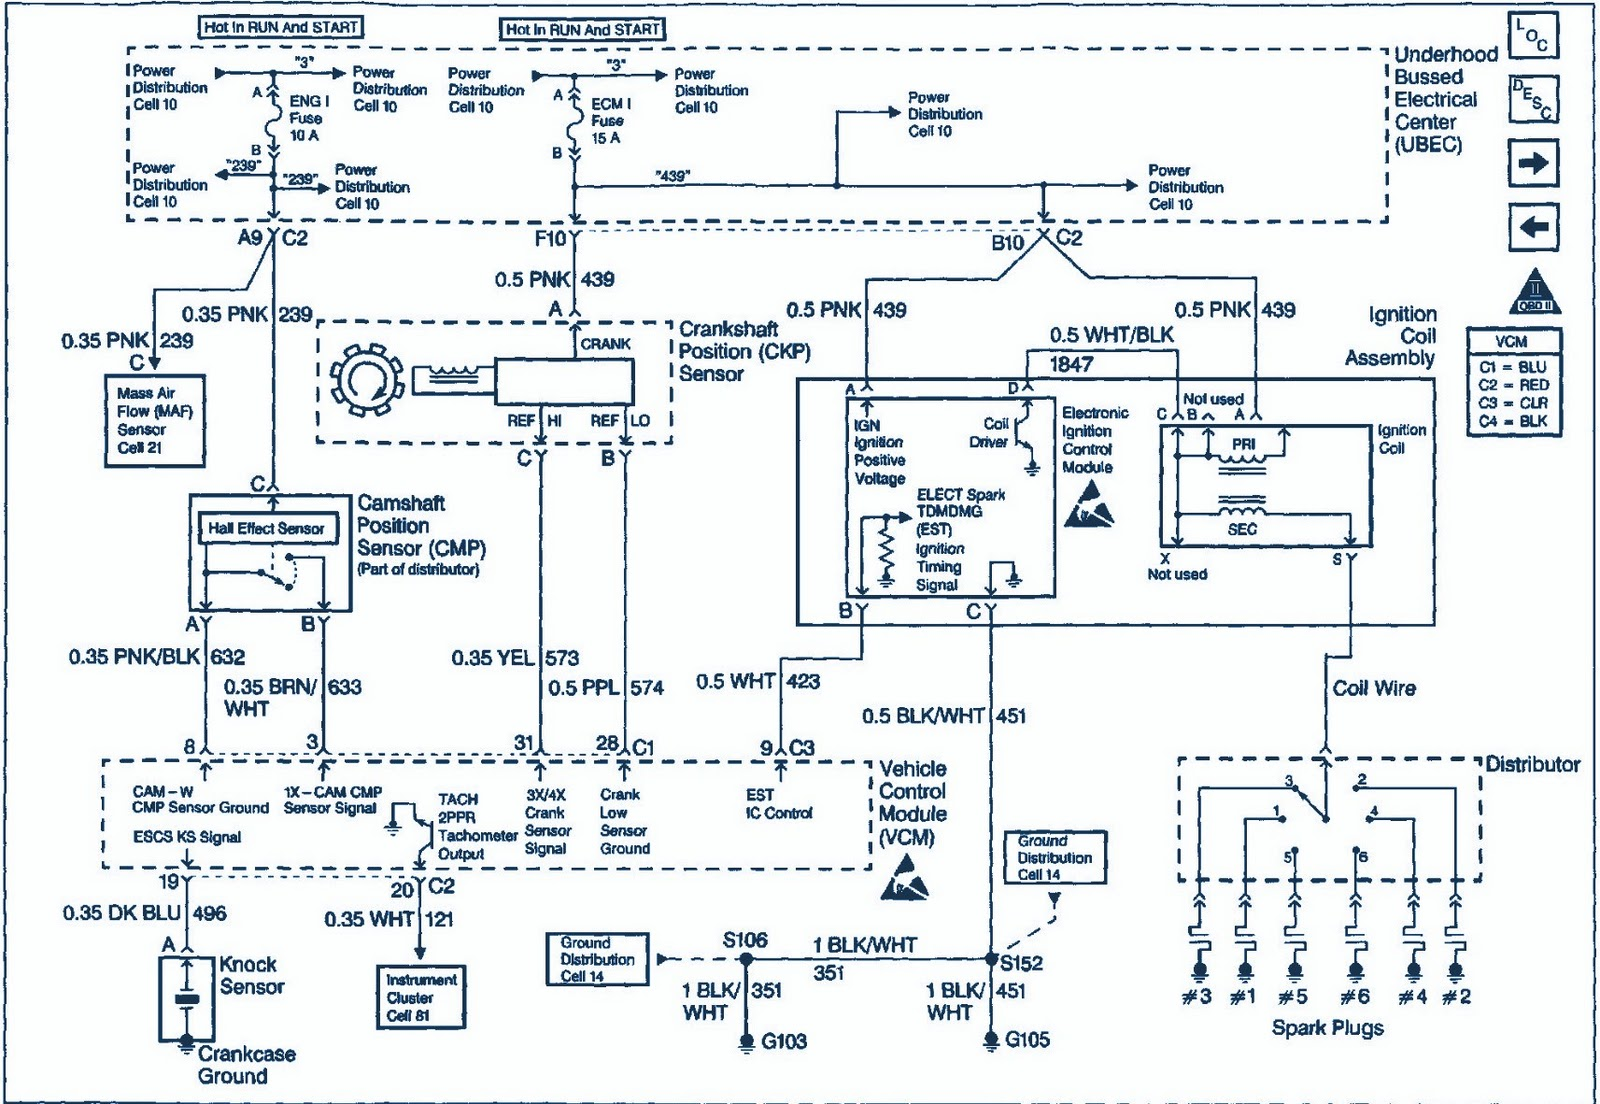 Radio wiring diagram for gmc sierra general electric